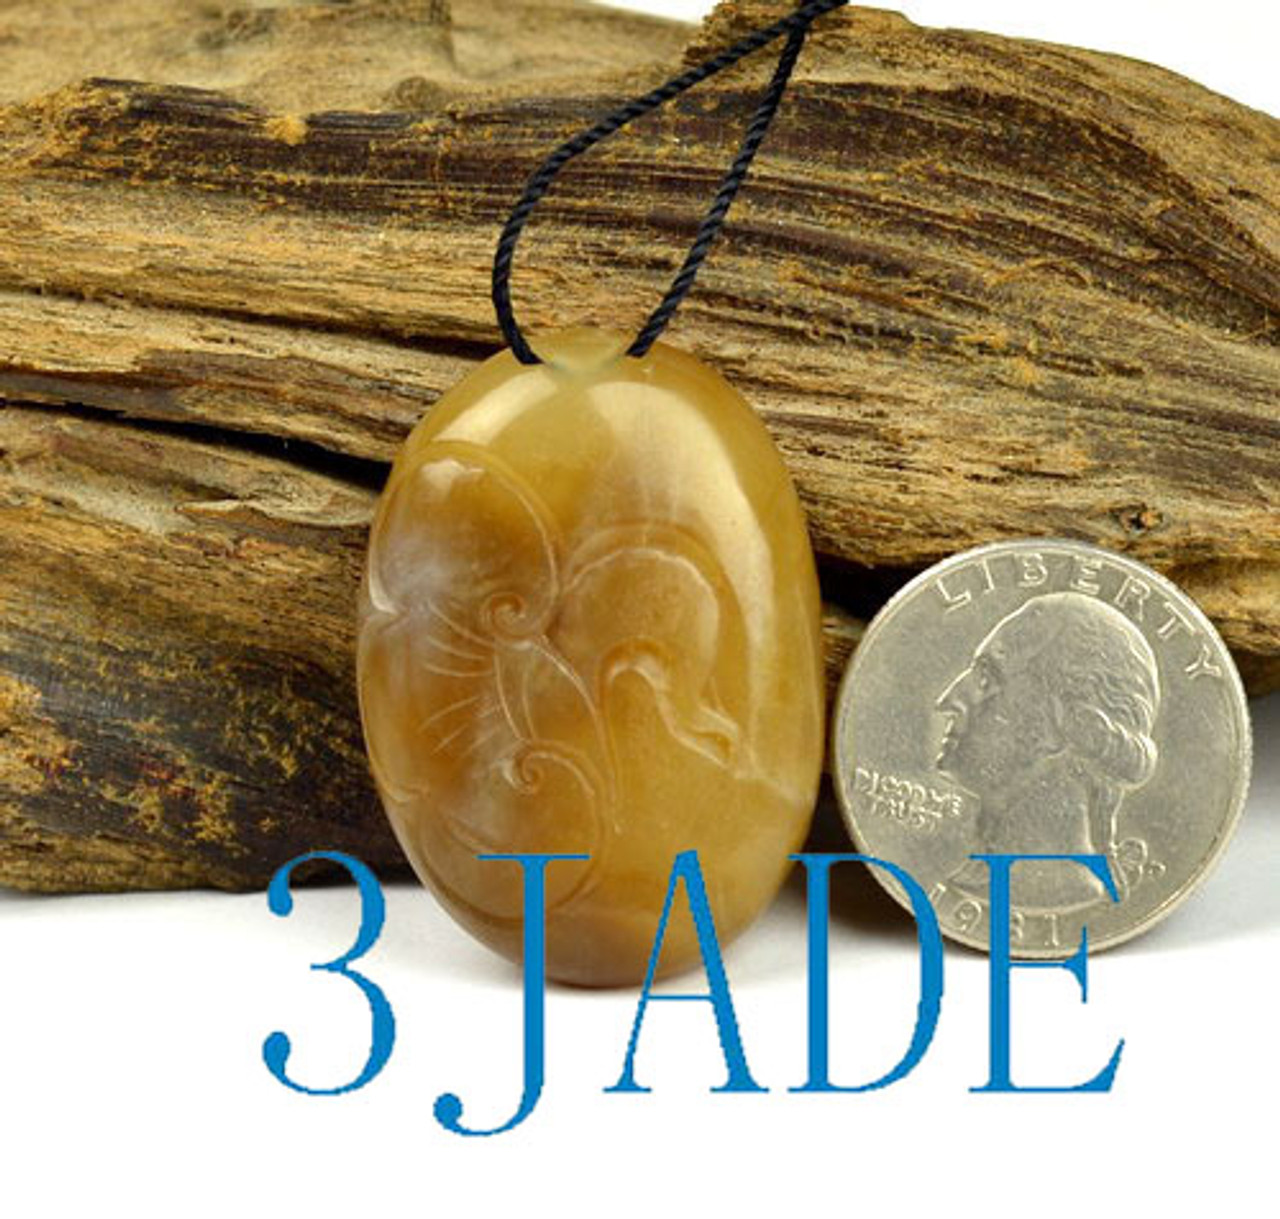 Hand Carved Natural Brown-White Nephrite Jade Bird Pendant Necklace w/ Certificate